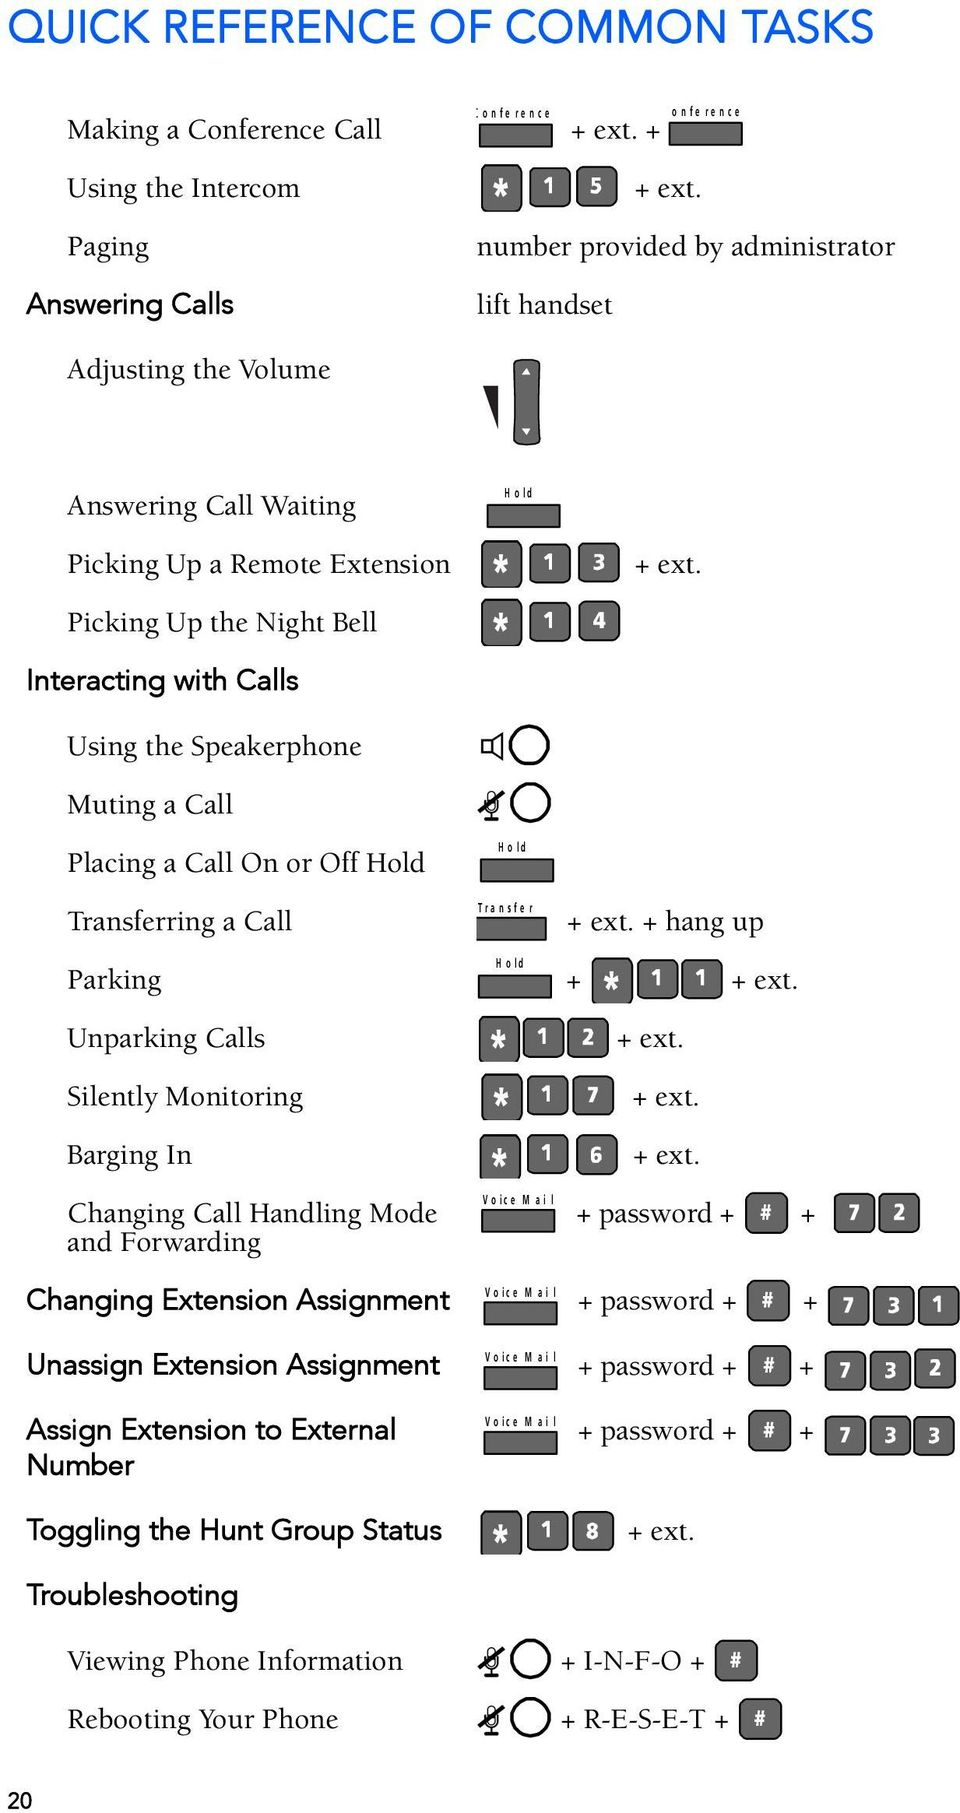 Picking Up the Night Bell Interacting with Calls Using the Speakerphone Muting a Call Placing a Call On or Off Hold H o l d Tra n sfe Transferring a Call r + ext. + hang up Parking + + ext.